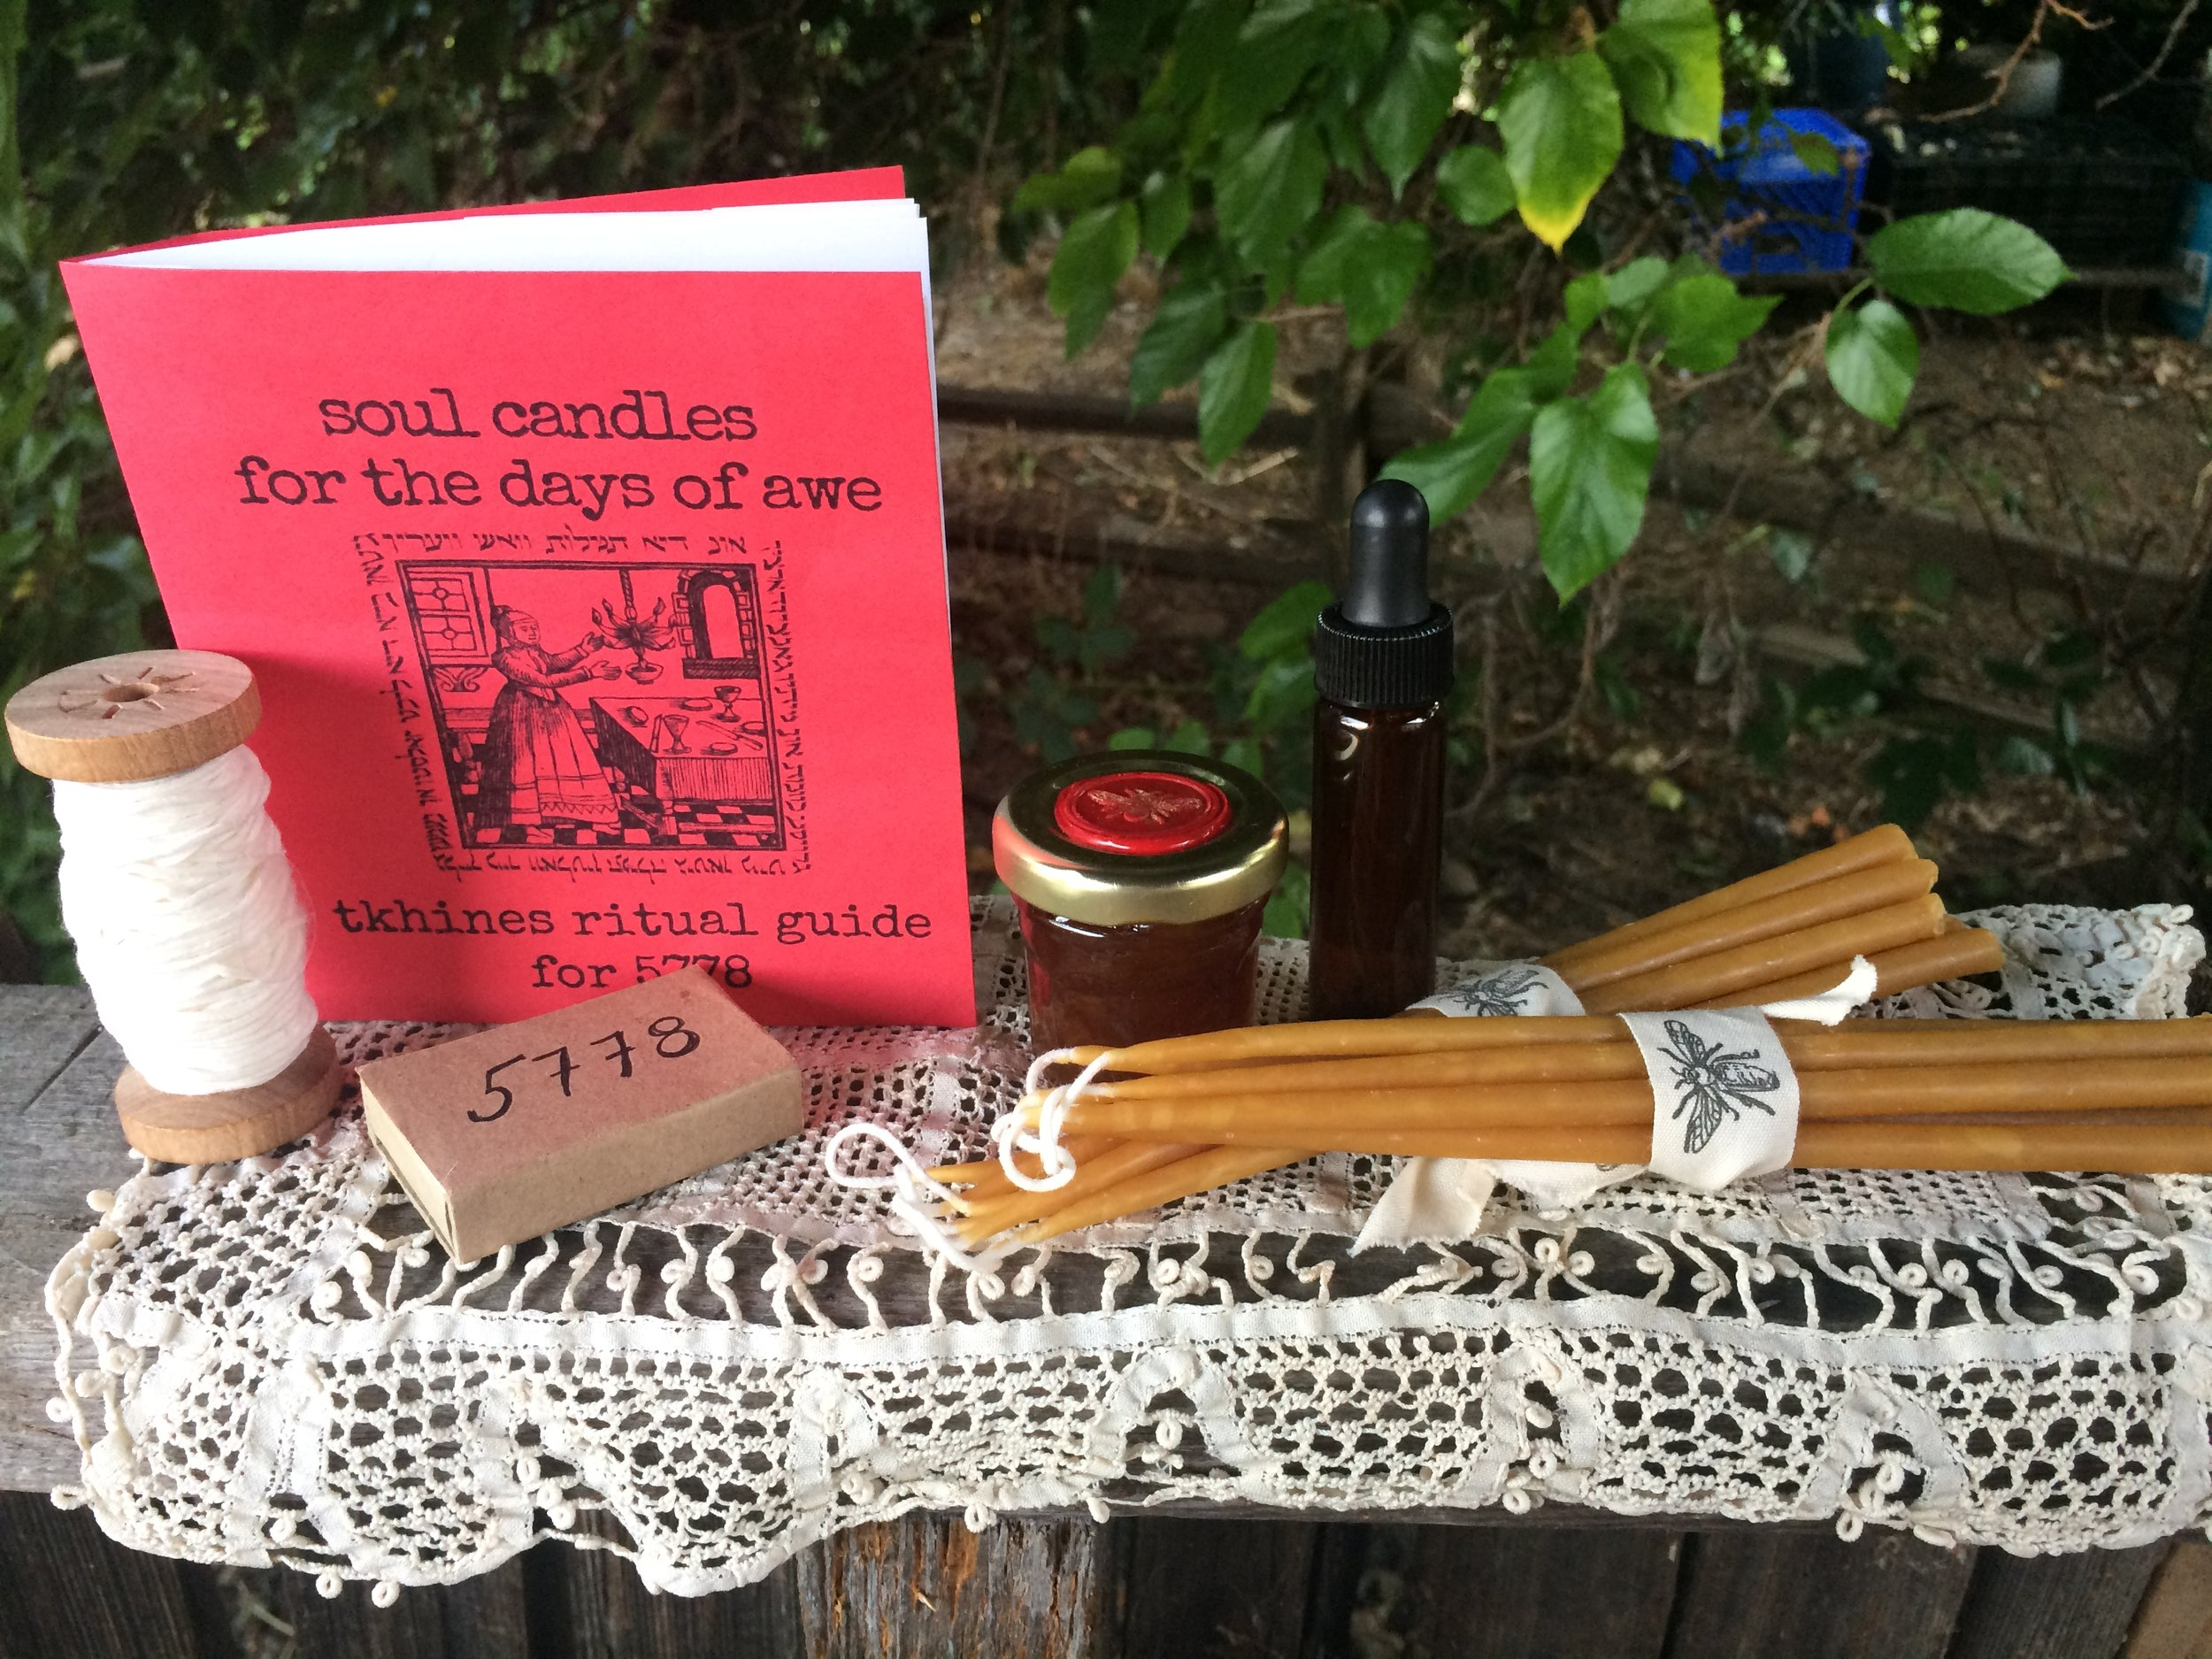 Soul Candles Tkhines Kit - Collaboration with Jonah Aline Daniel of Narrow Bridge Candles, this kit included all the supplies and information needed to make yizkor (memorial) candles for the High Holy Day season, based on Ashkenazi candle making custom.Learn more here.